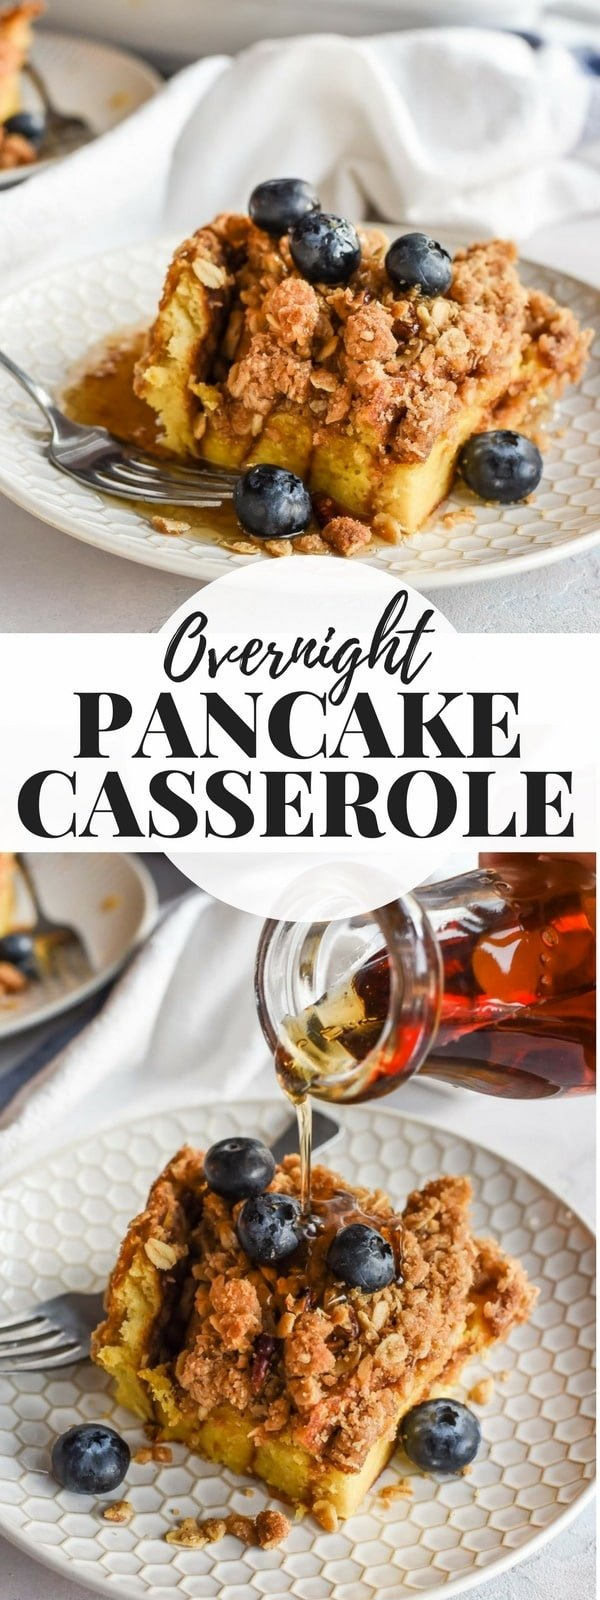 Overnight Pancake Casserole slices with blueberries and syrup